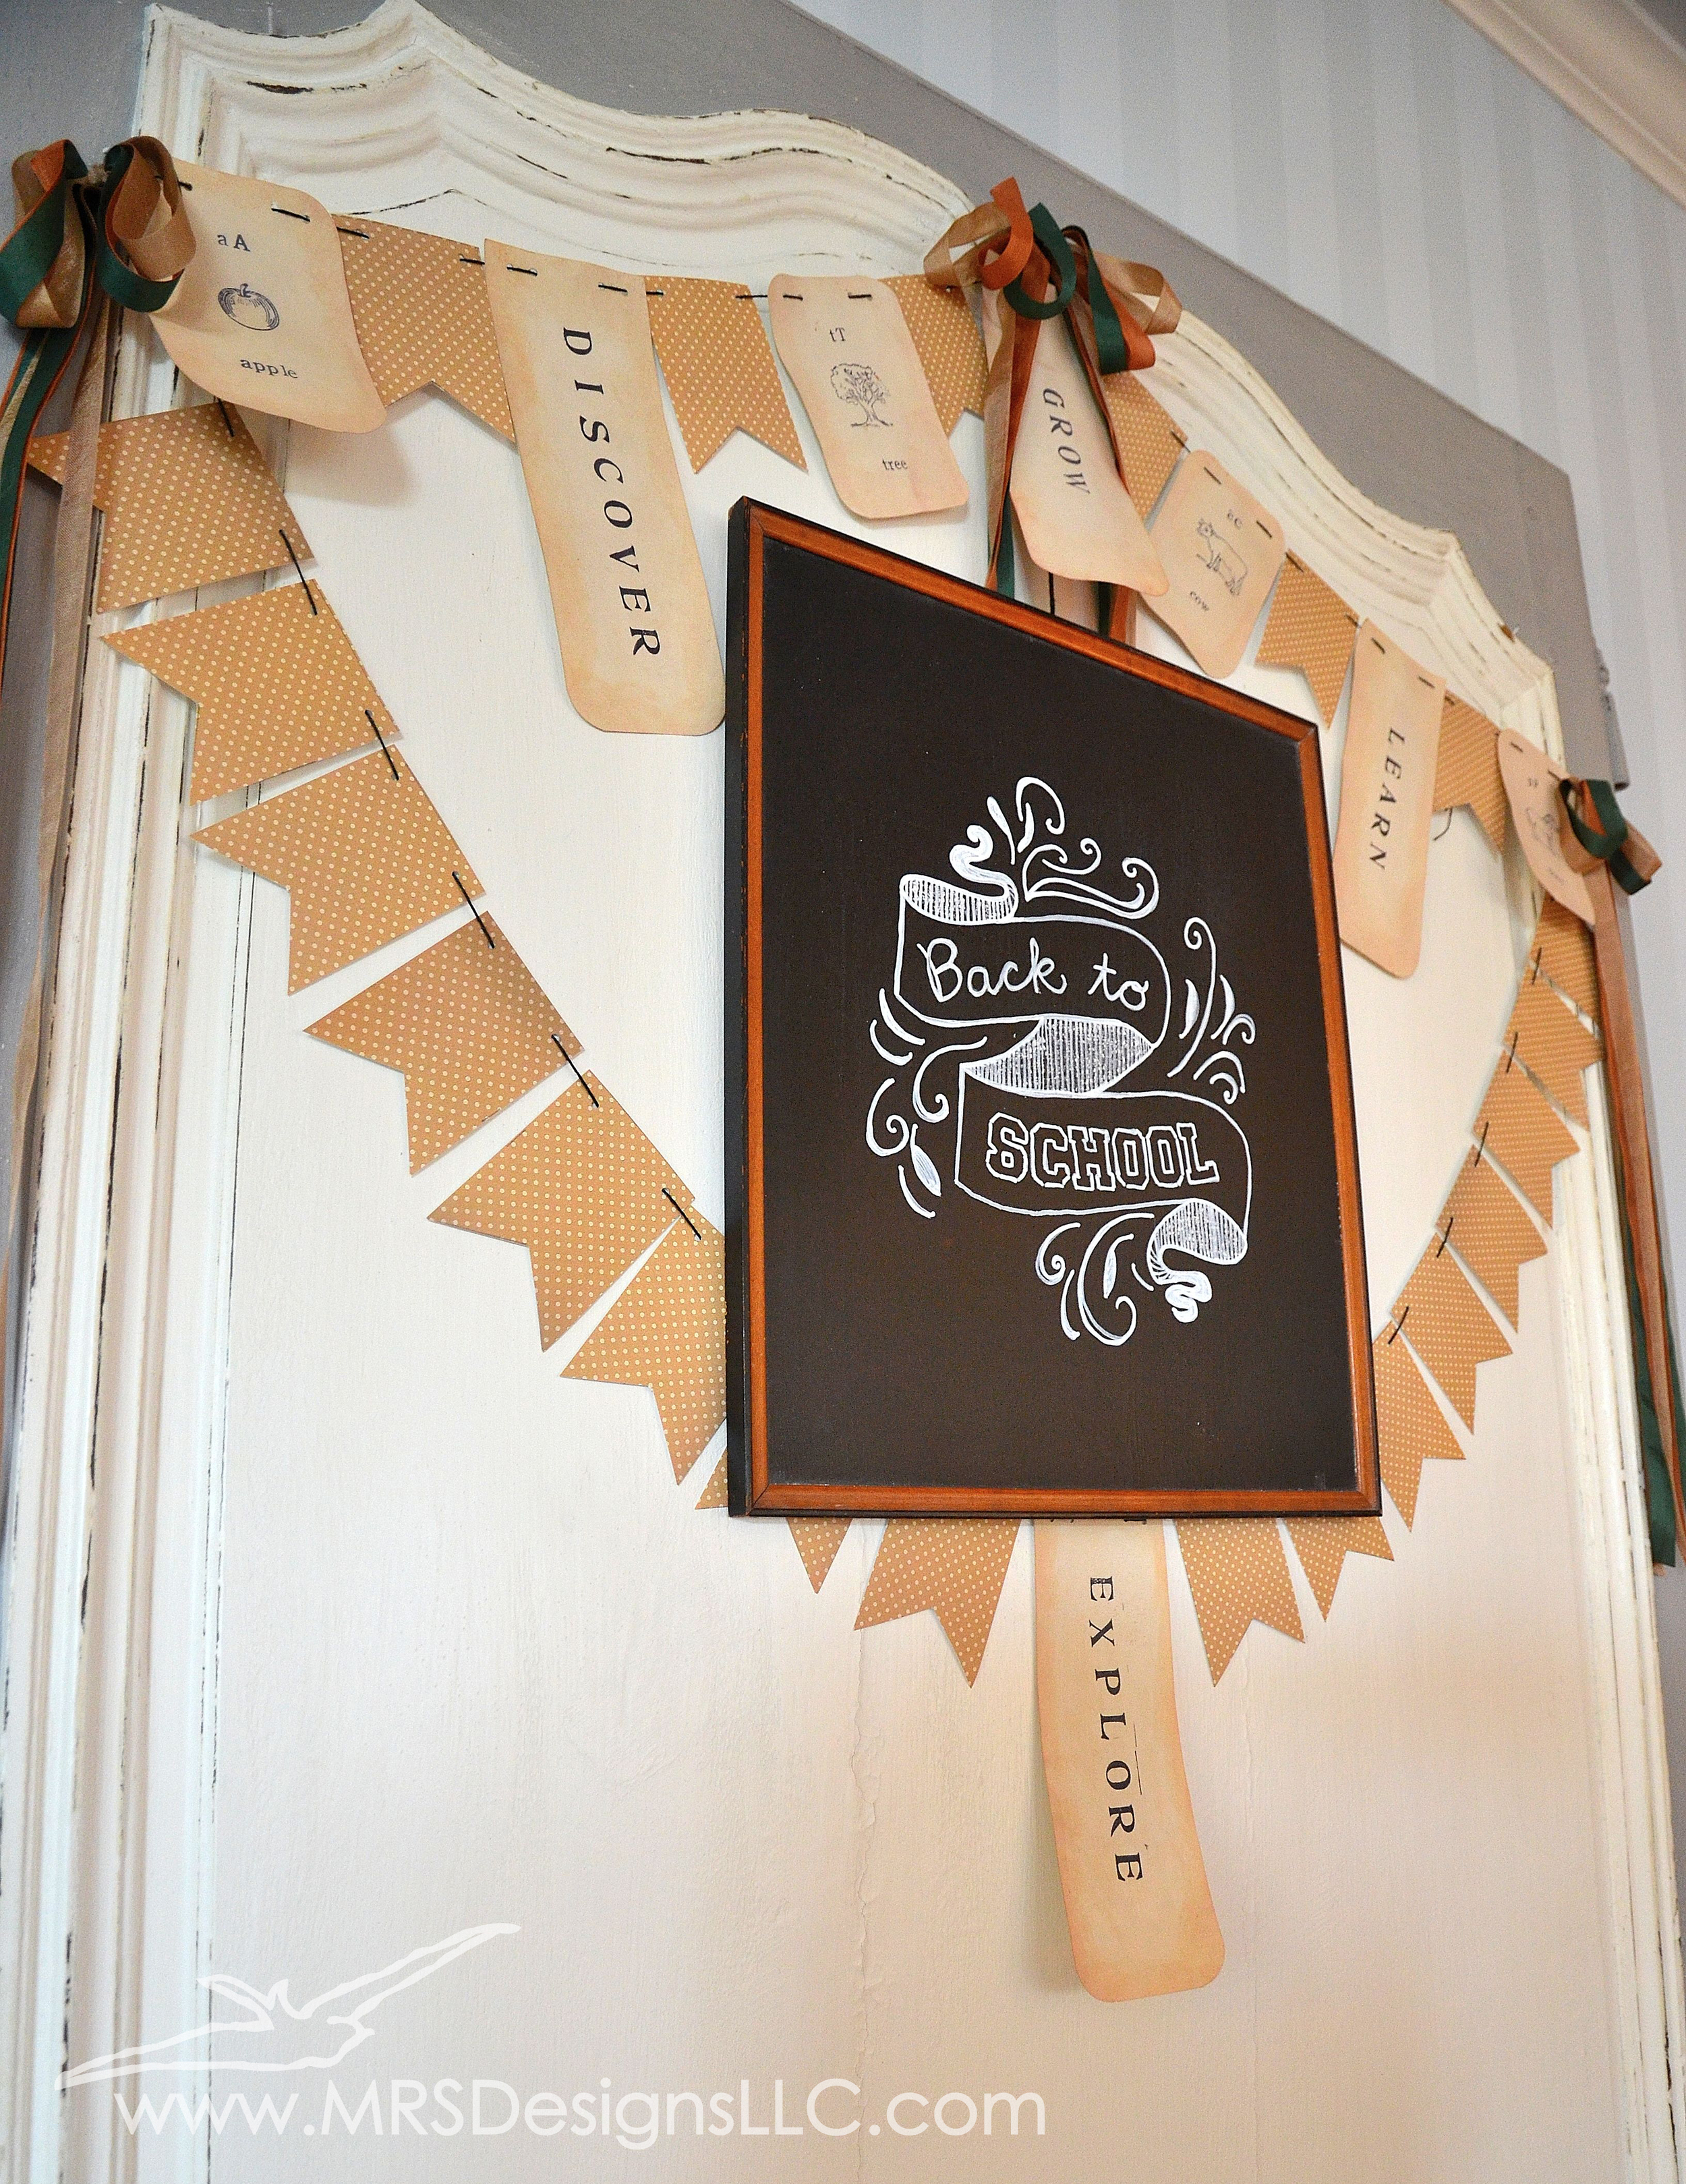 MRS Designs Blog - Refinishing a Vintage Door and Back To School Chalkboard Art and Bunting Banner